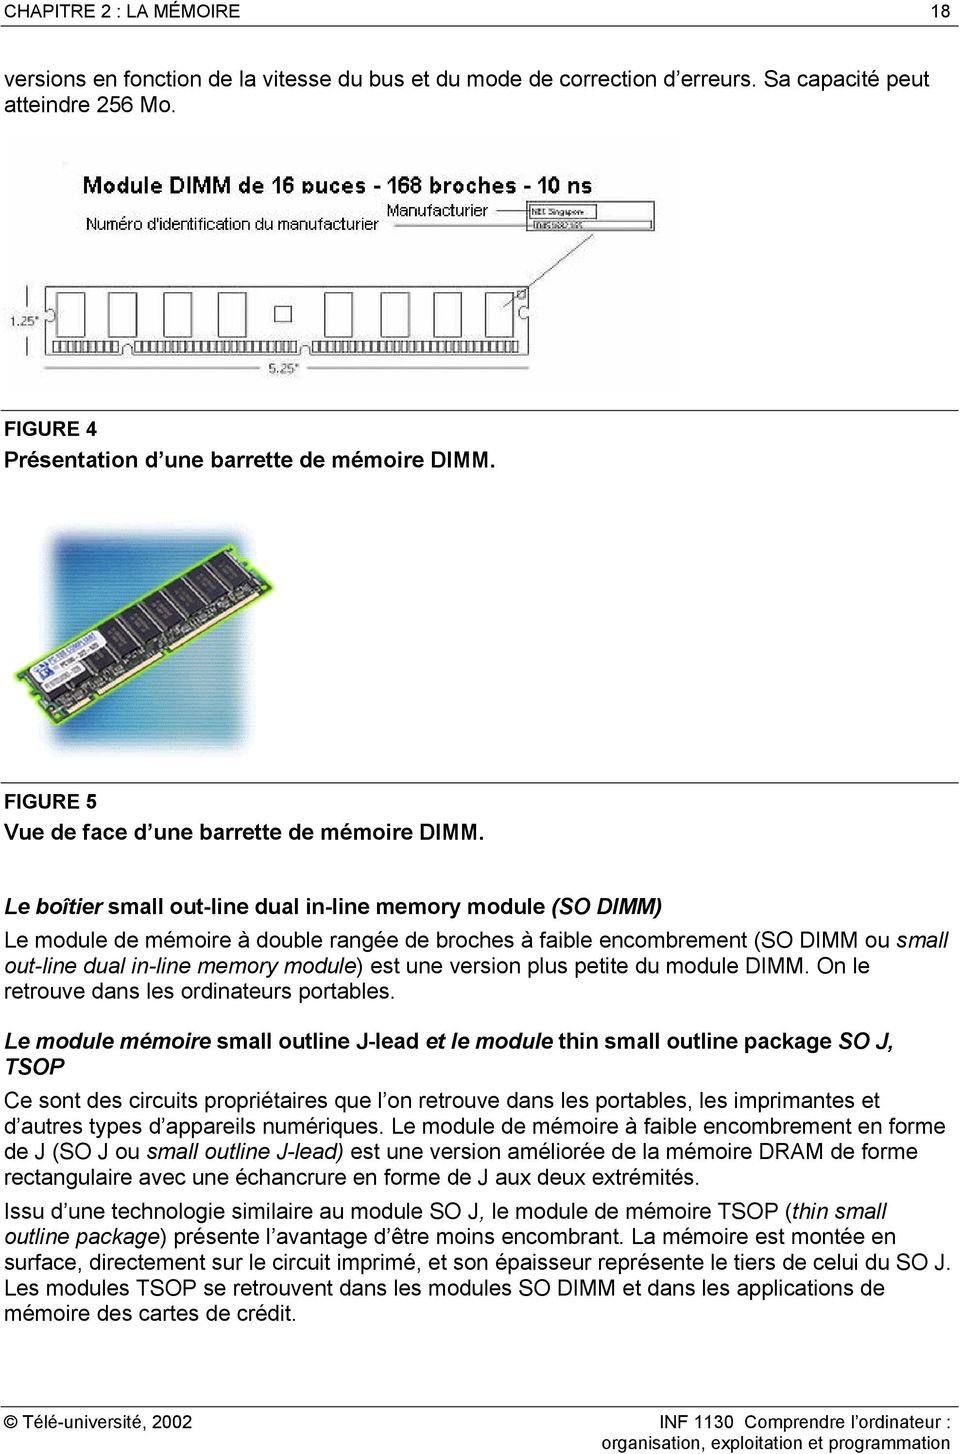 Le boîtier small out-line dual in-line memory module (SO DIMM) Le module de mémoire à double rangée de broches à faible encombrement (SO DIMM ou small out-line dual in-line memory module) est une